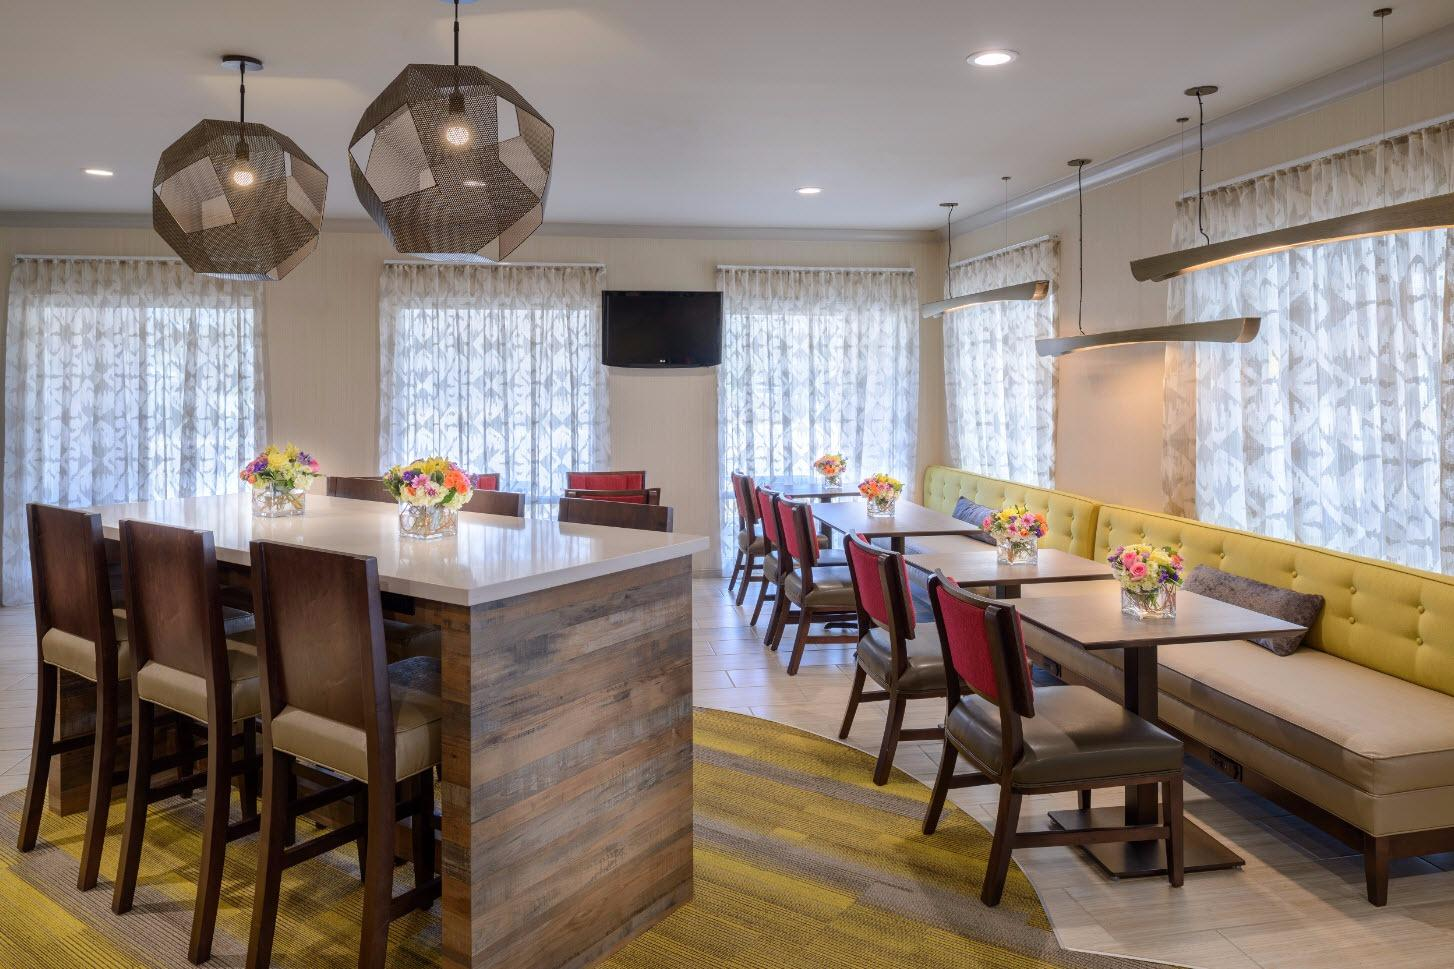 SpringHill Suites by Marriott St. Louis Chesterfield image 9